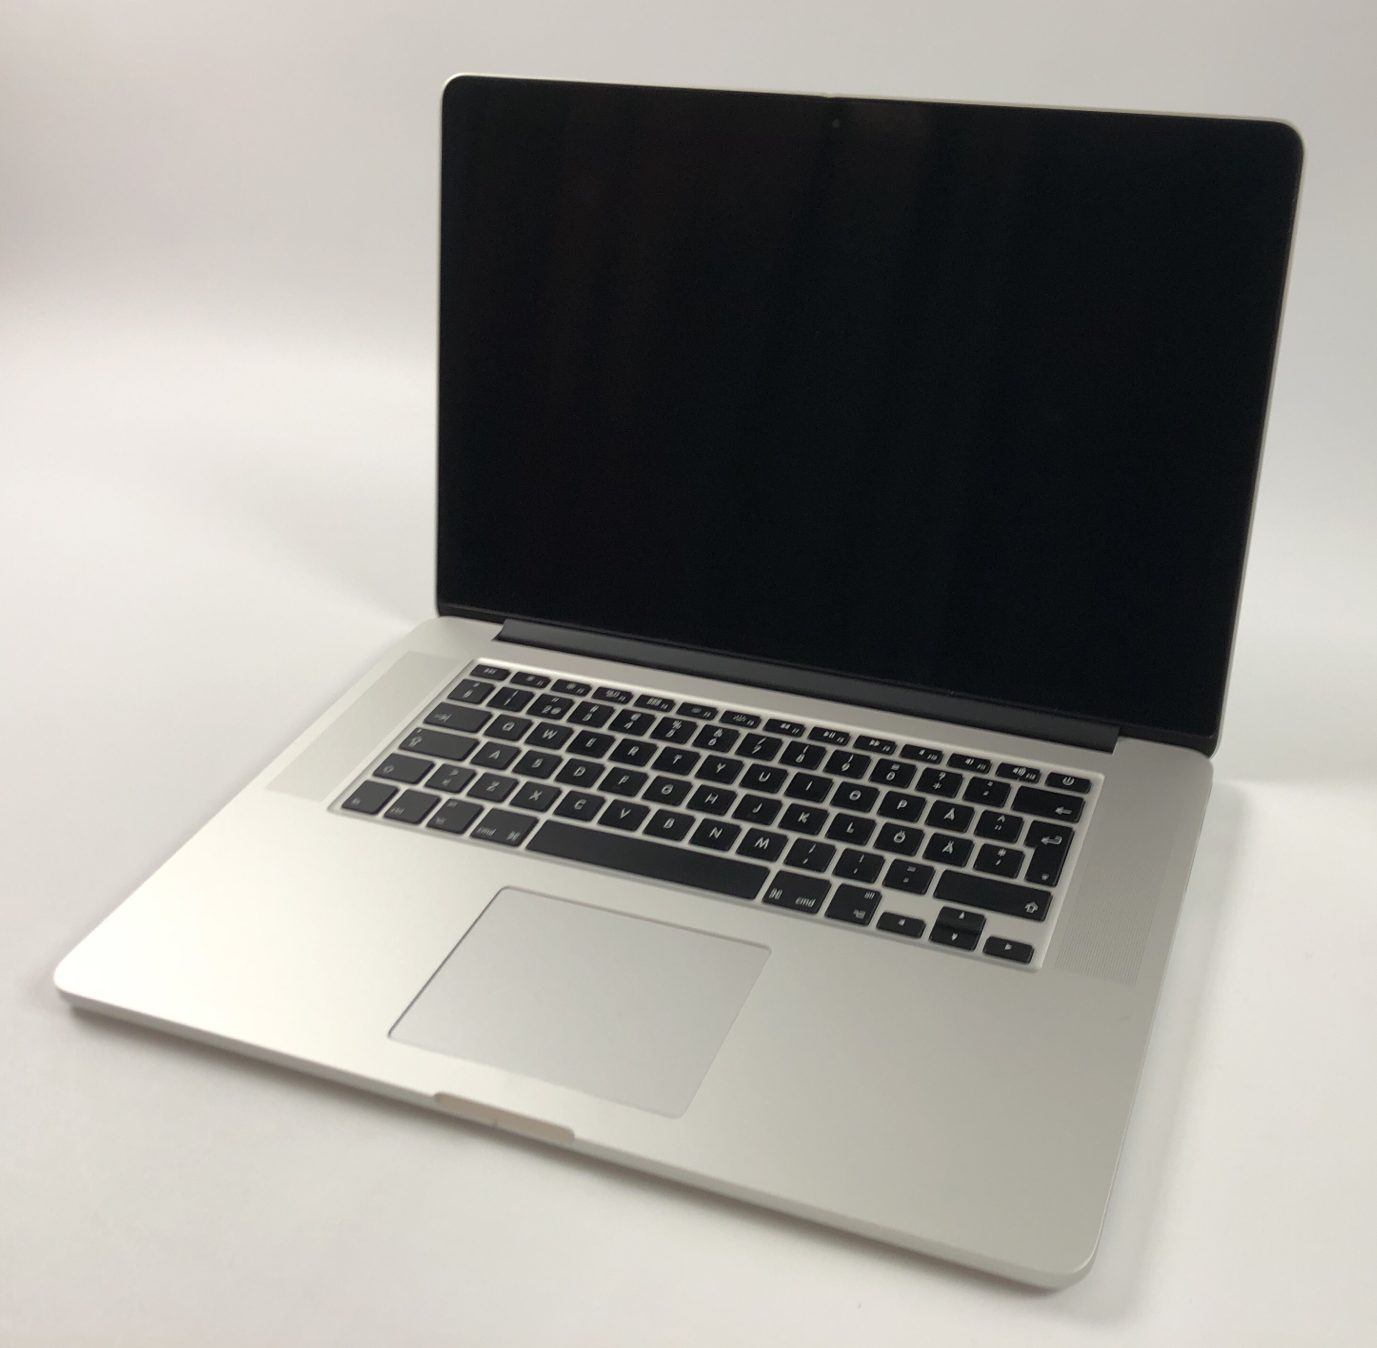 "MacBook Pro Retina 15"" Mid 2015 (Intel Quad-Core i7 2.2 GHz 16 GB RAM 256 GB SSD), Intel Quad-Core i7 2.2 GHz, 16 GB RAM, 256 GB SSD, bild 1"